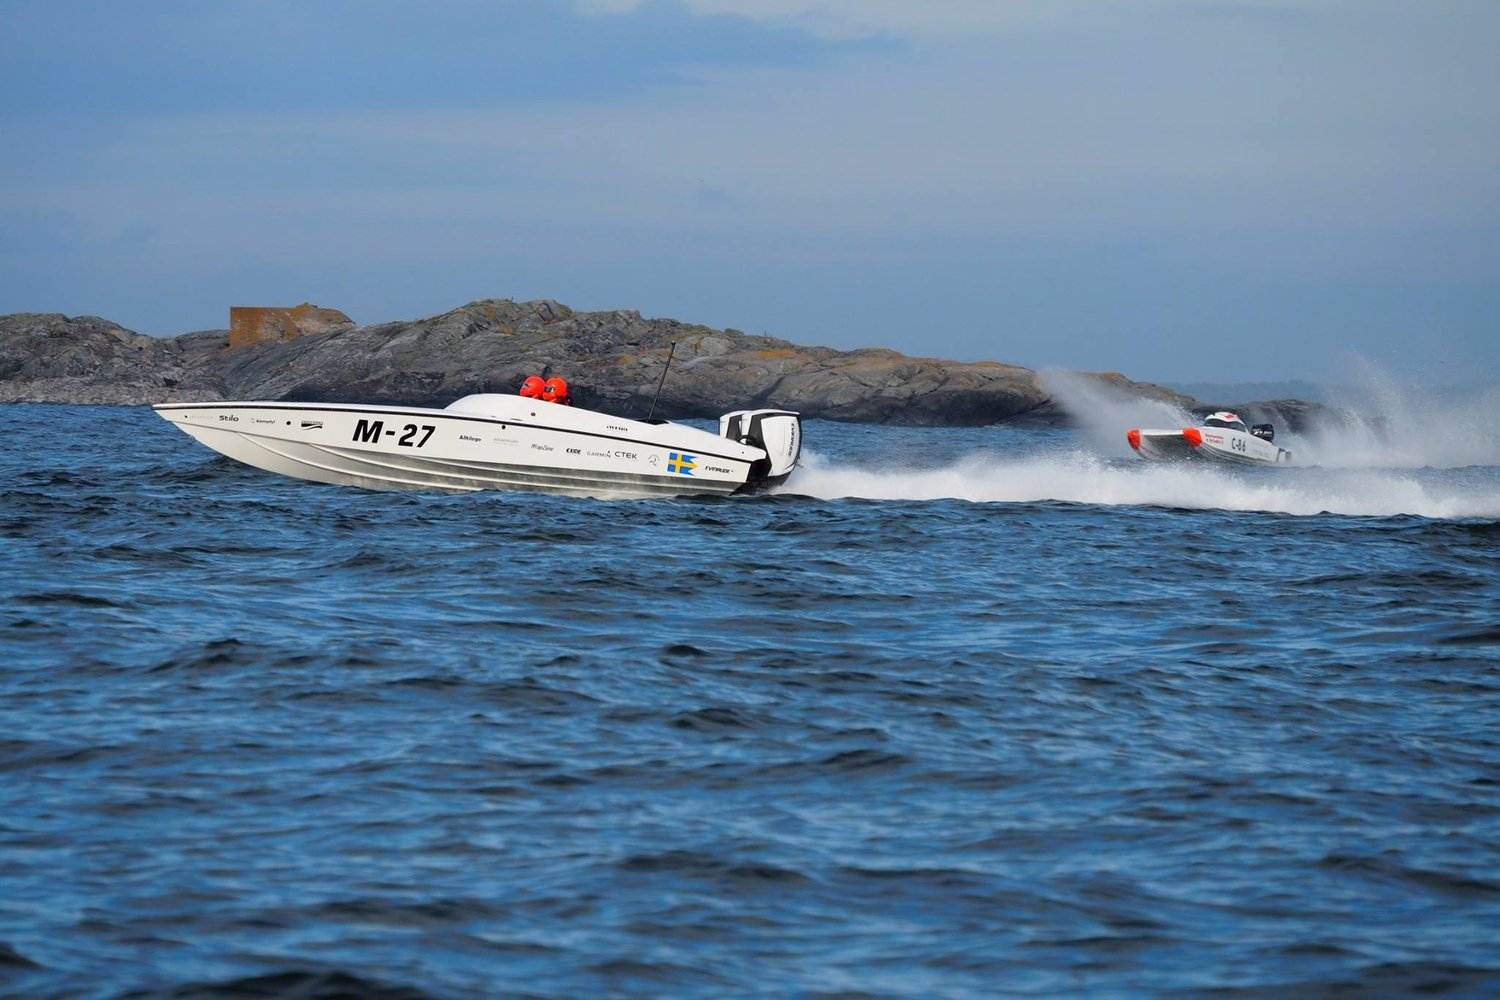 European racing has made builders push the limits on design. Nitra Boats has really taken design to a new level with the incredible performance of the new 29. Stock Evinrude G2s provide exceptional efficiency.